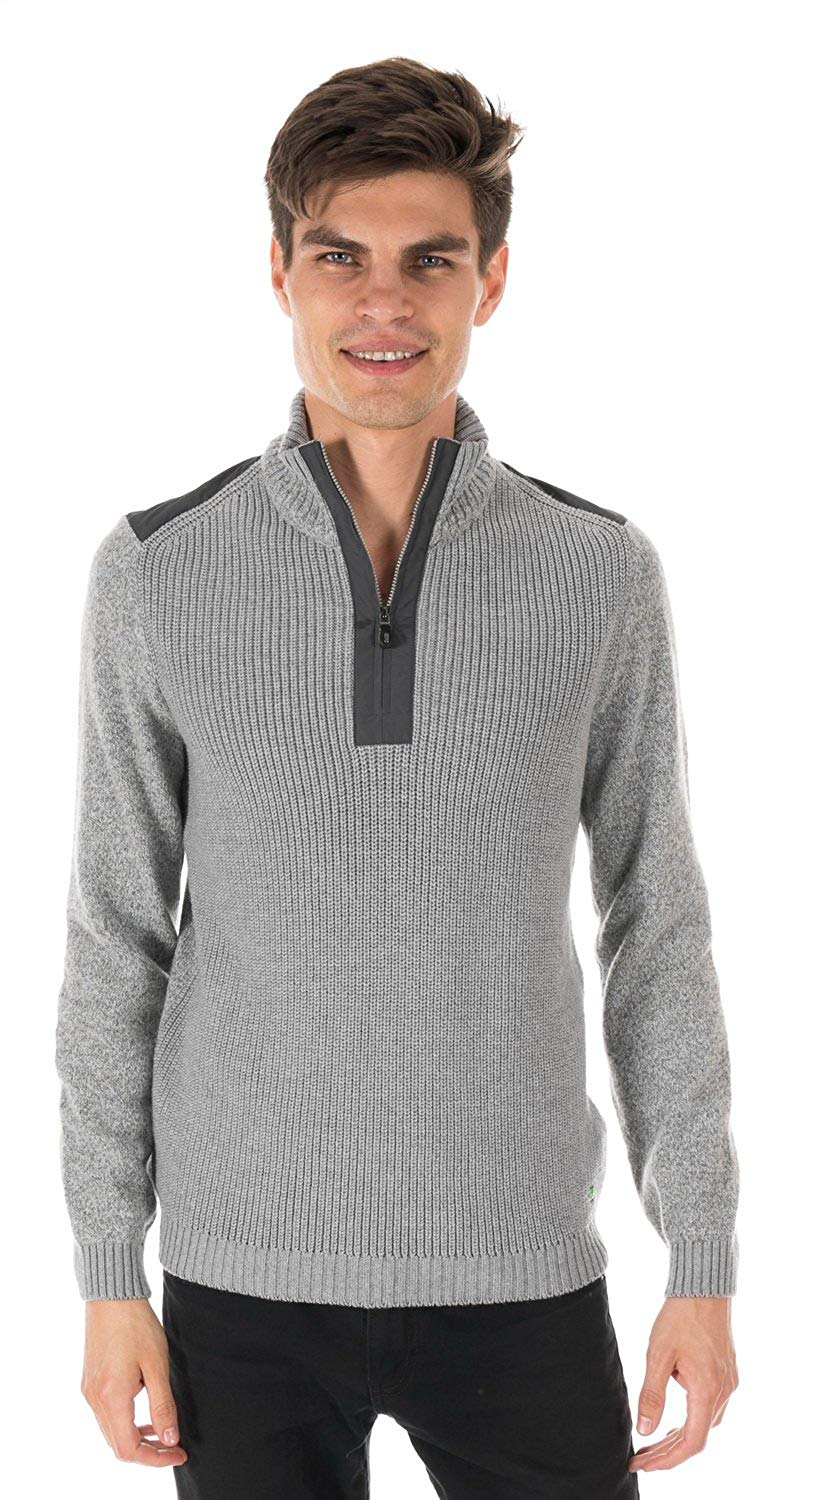 Hugo Boss Knitted-Pullover Zem Light/Pastel Grey 50299993-059